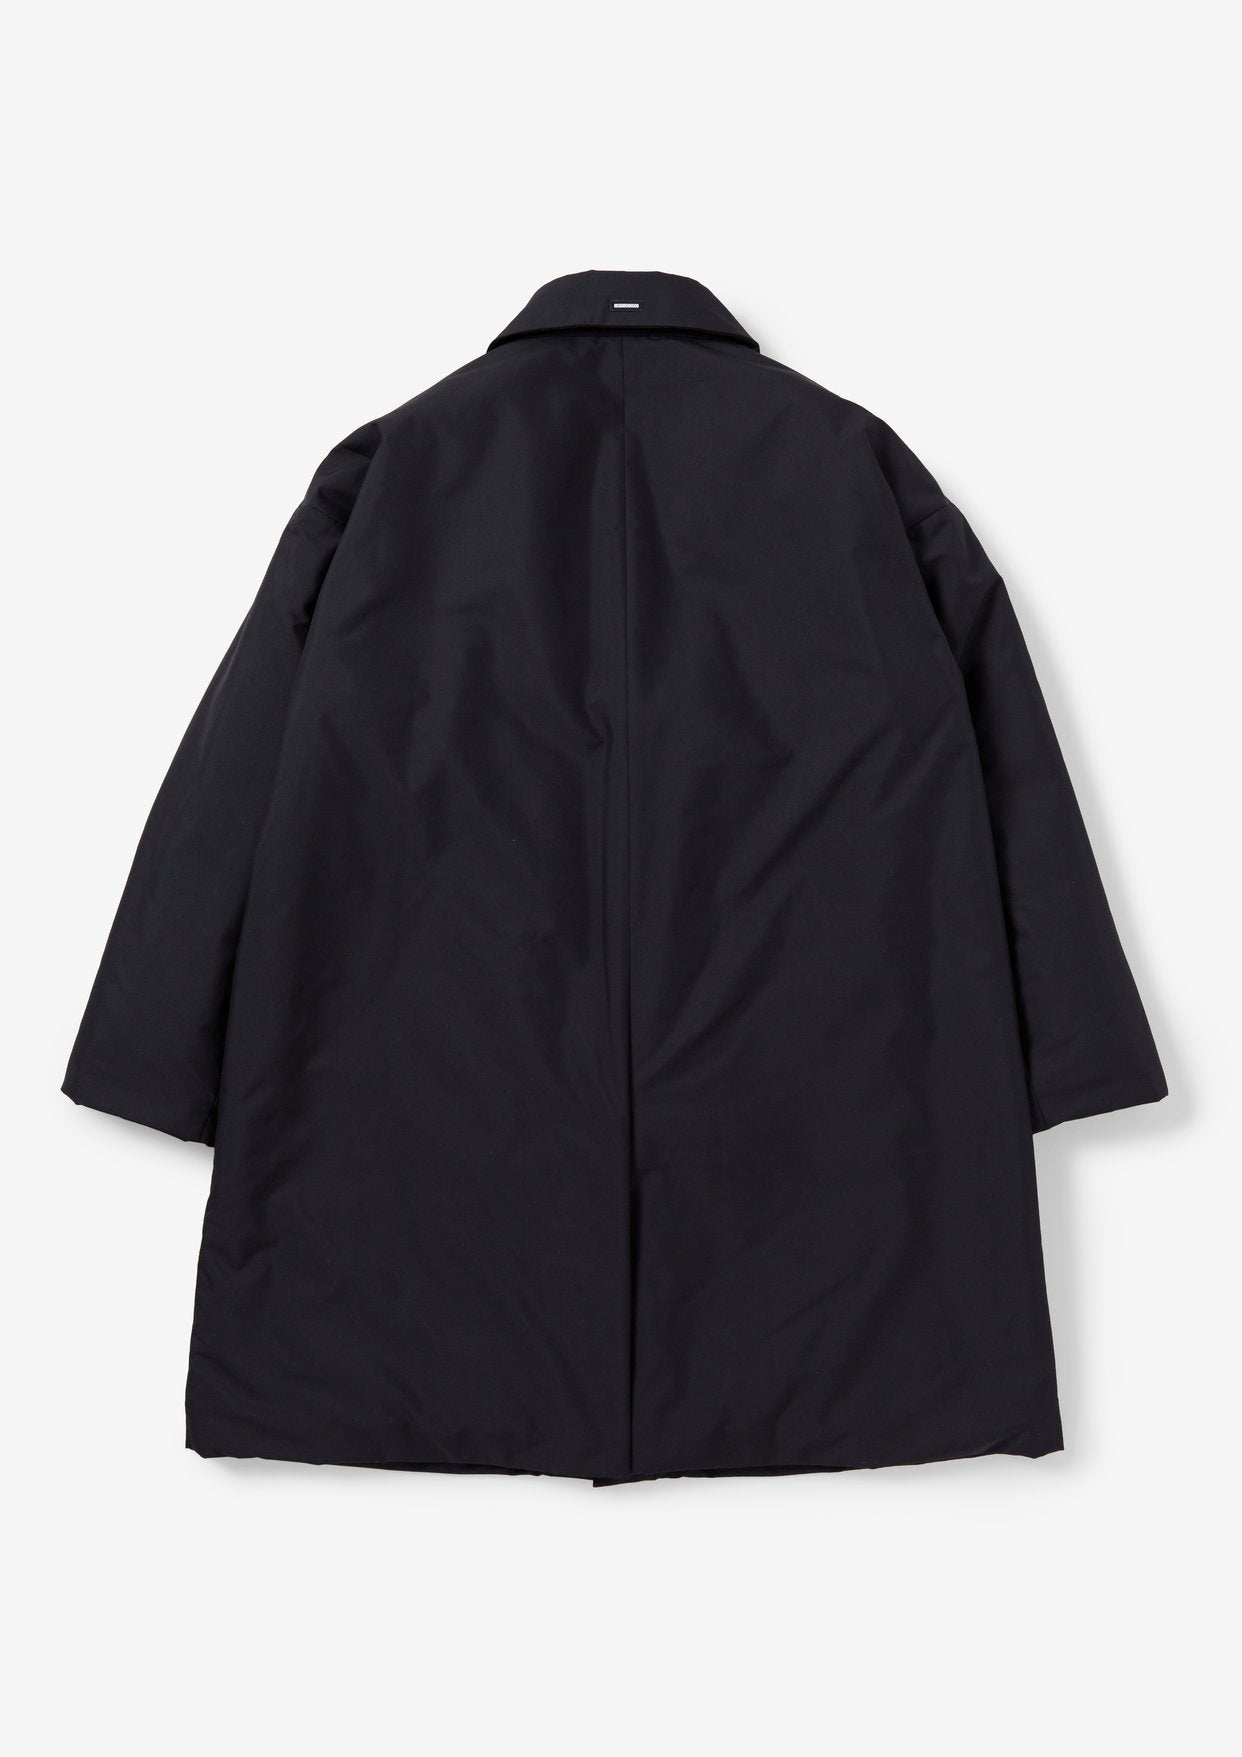 BAL / E-COAT - BLACK